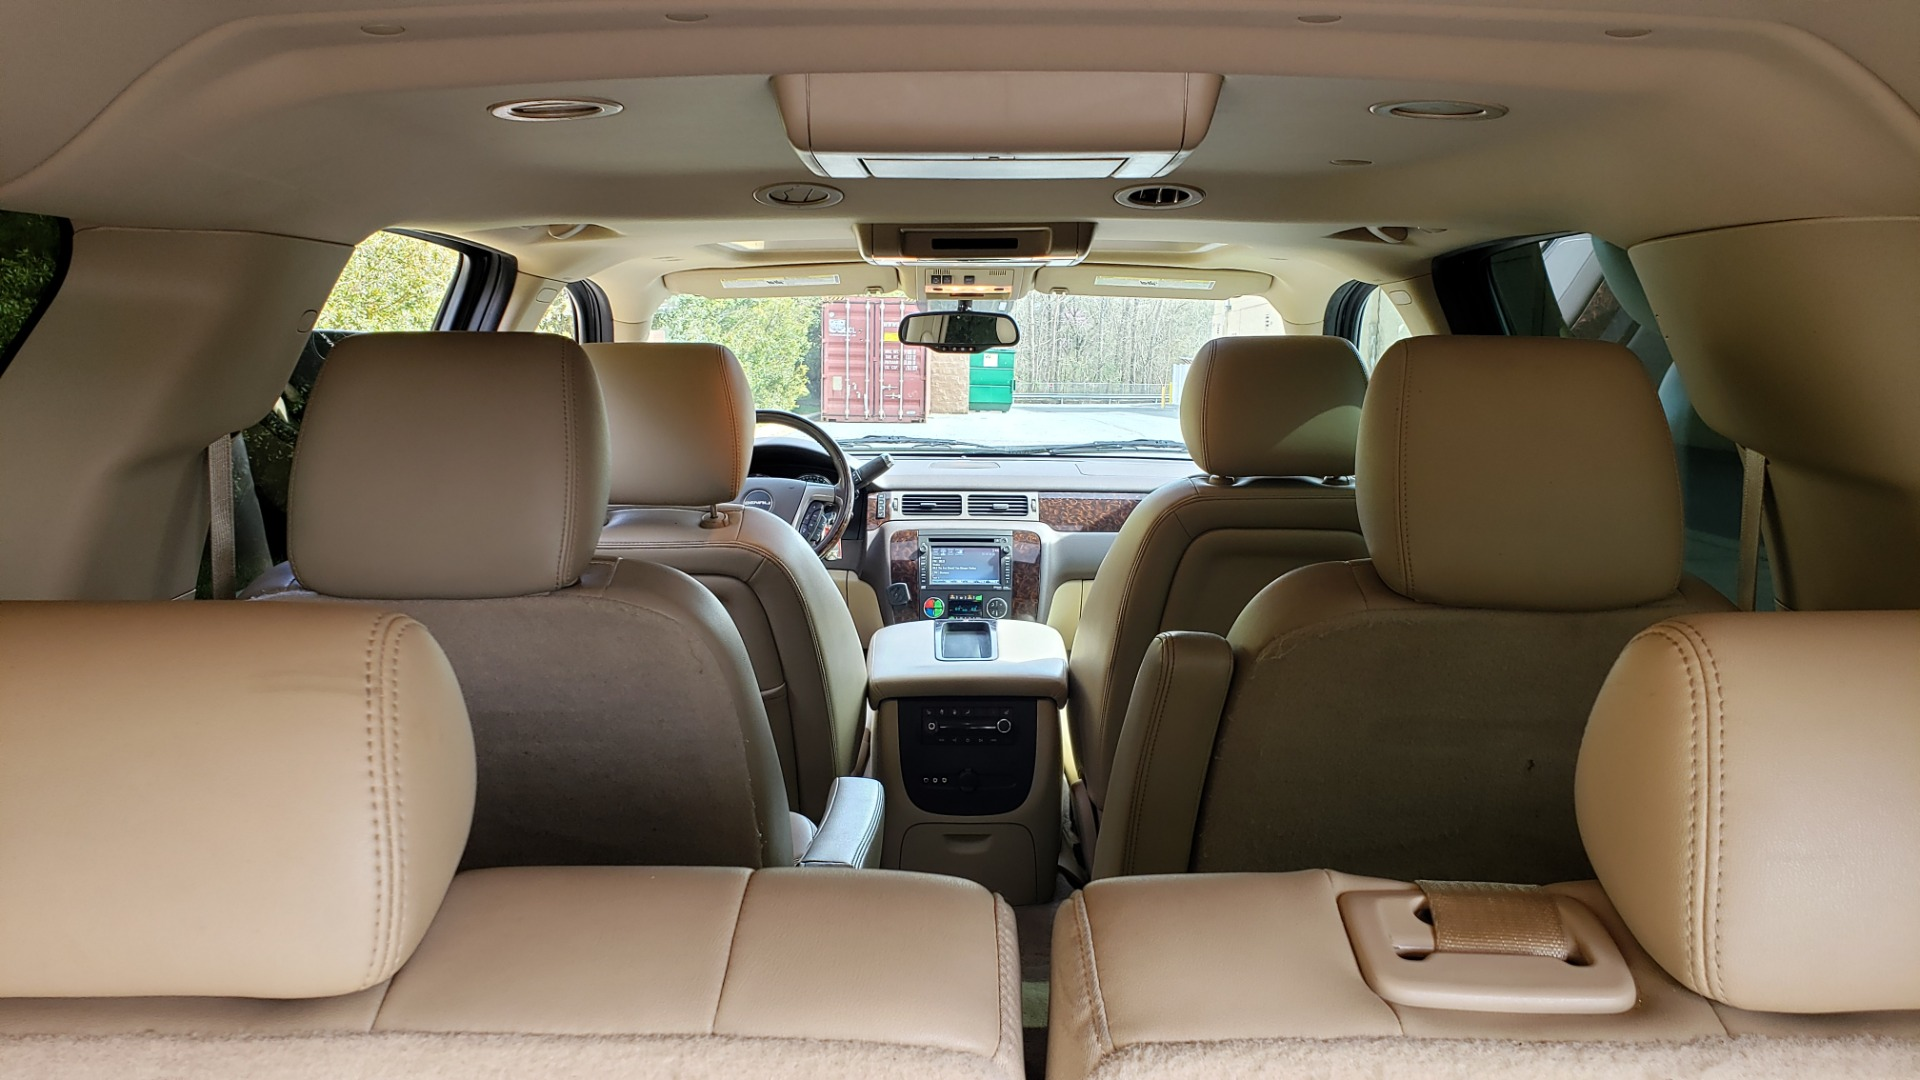 Used 2012 GMC YUKON XL DENALI AWD / NAV / SUN & ENT PKG / SUNROOF / REARVIEW / 3-ROW for sale Sold at Formula Imports in Charlotte NC 28227 16